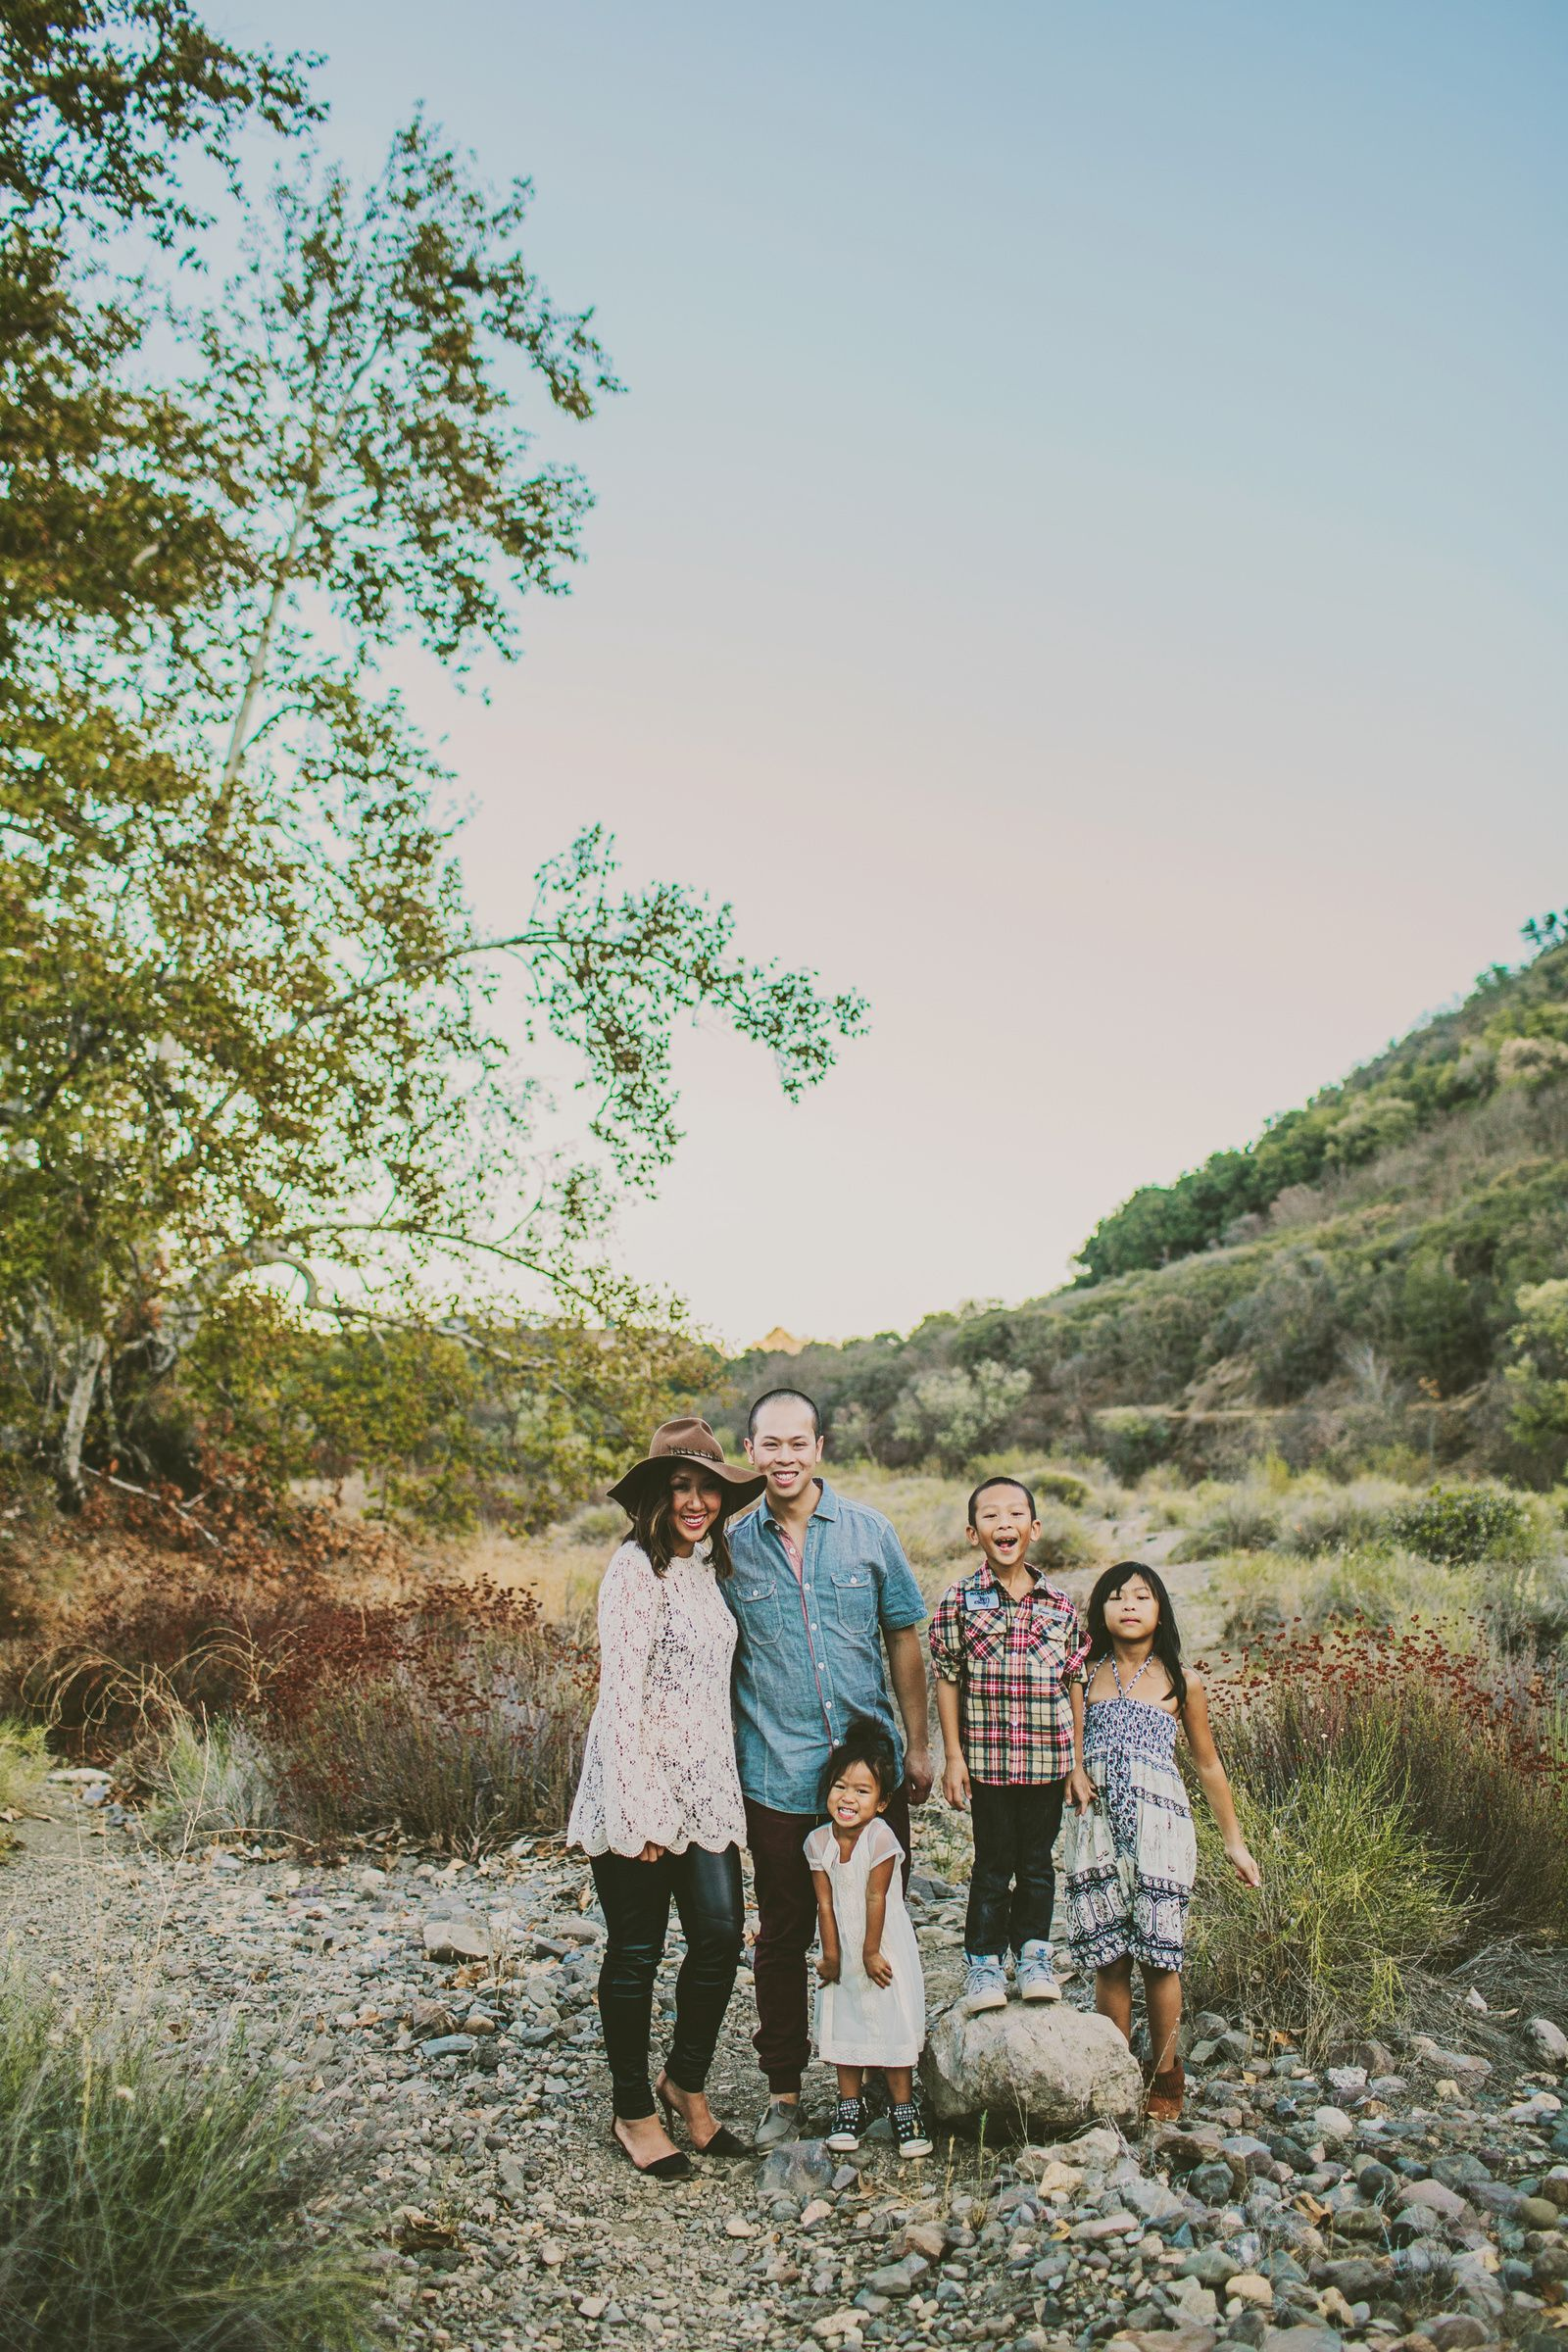 Wild Whim Design + Photography - Asaw Family